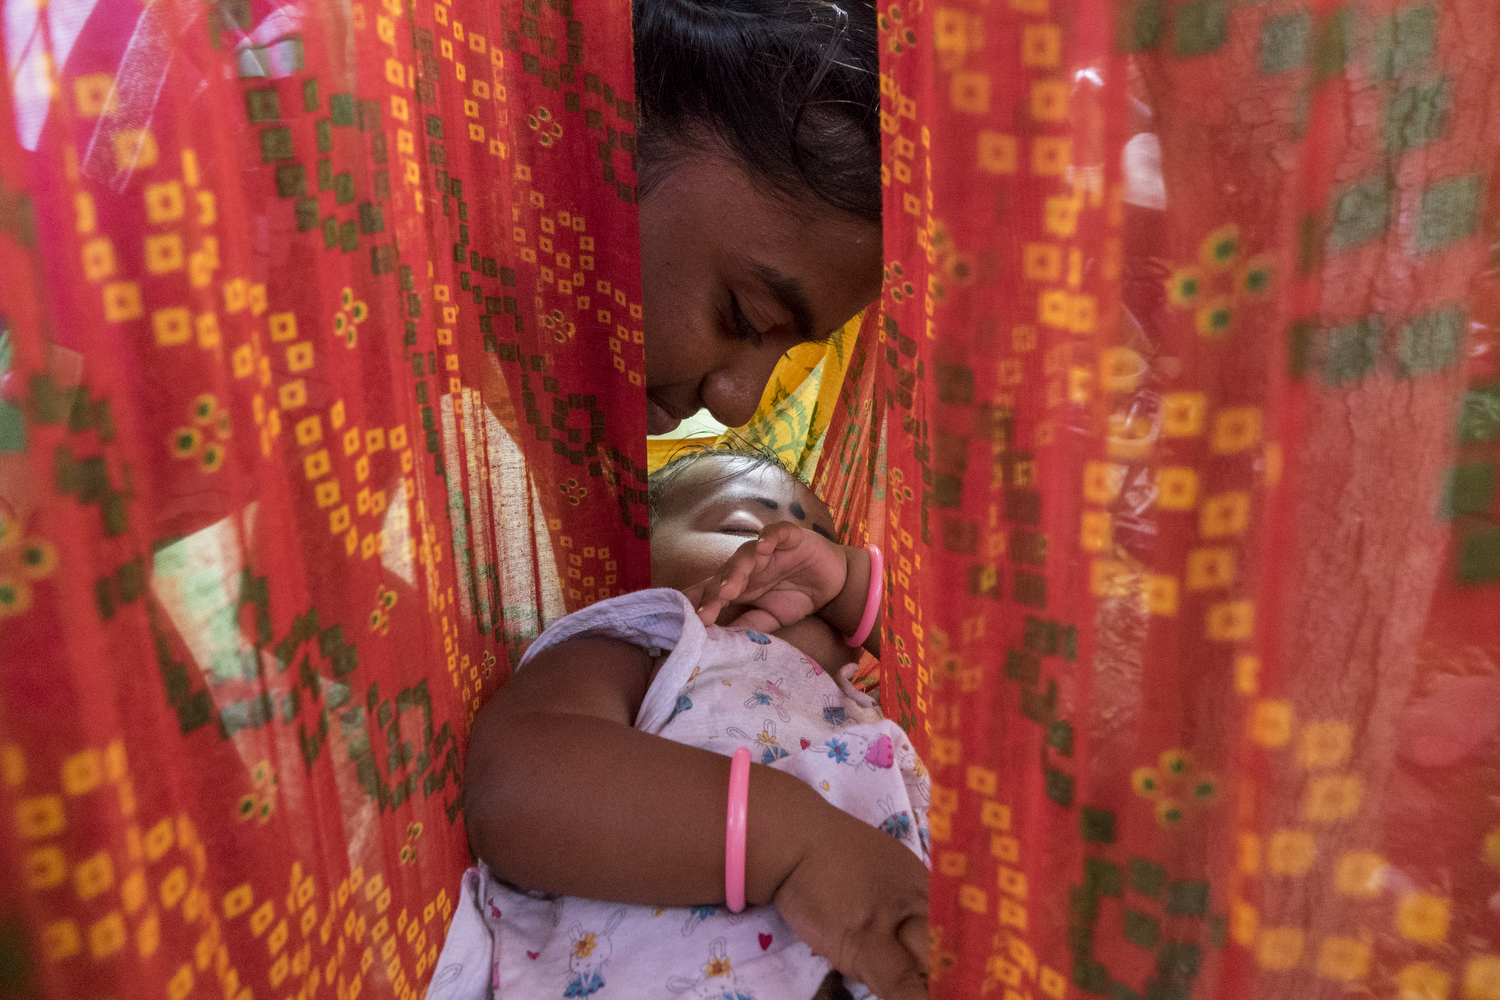 Bhuvaneshwari. P - The red cotton saree hangs from the Neem tree and cradles Dhanshika, an 8-month baby girl. Her sister kisses the baby as she sleeps in Anna Nagar.